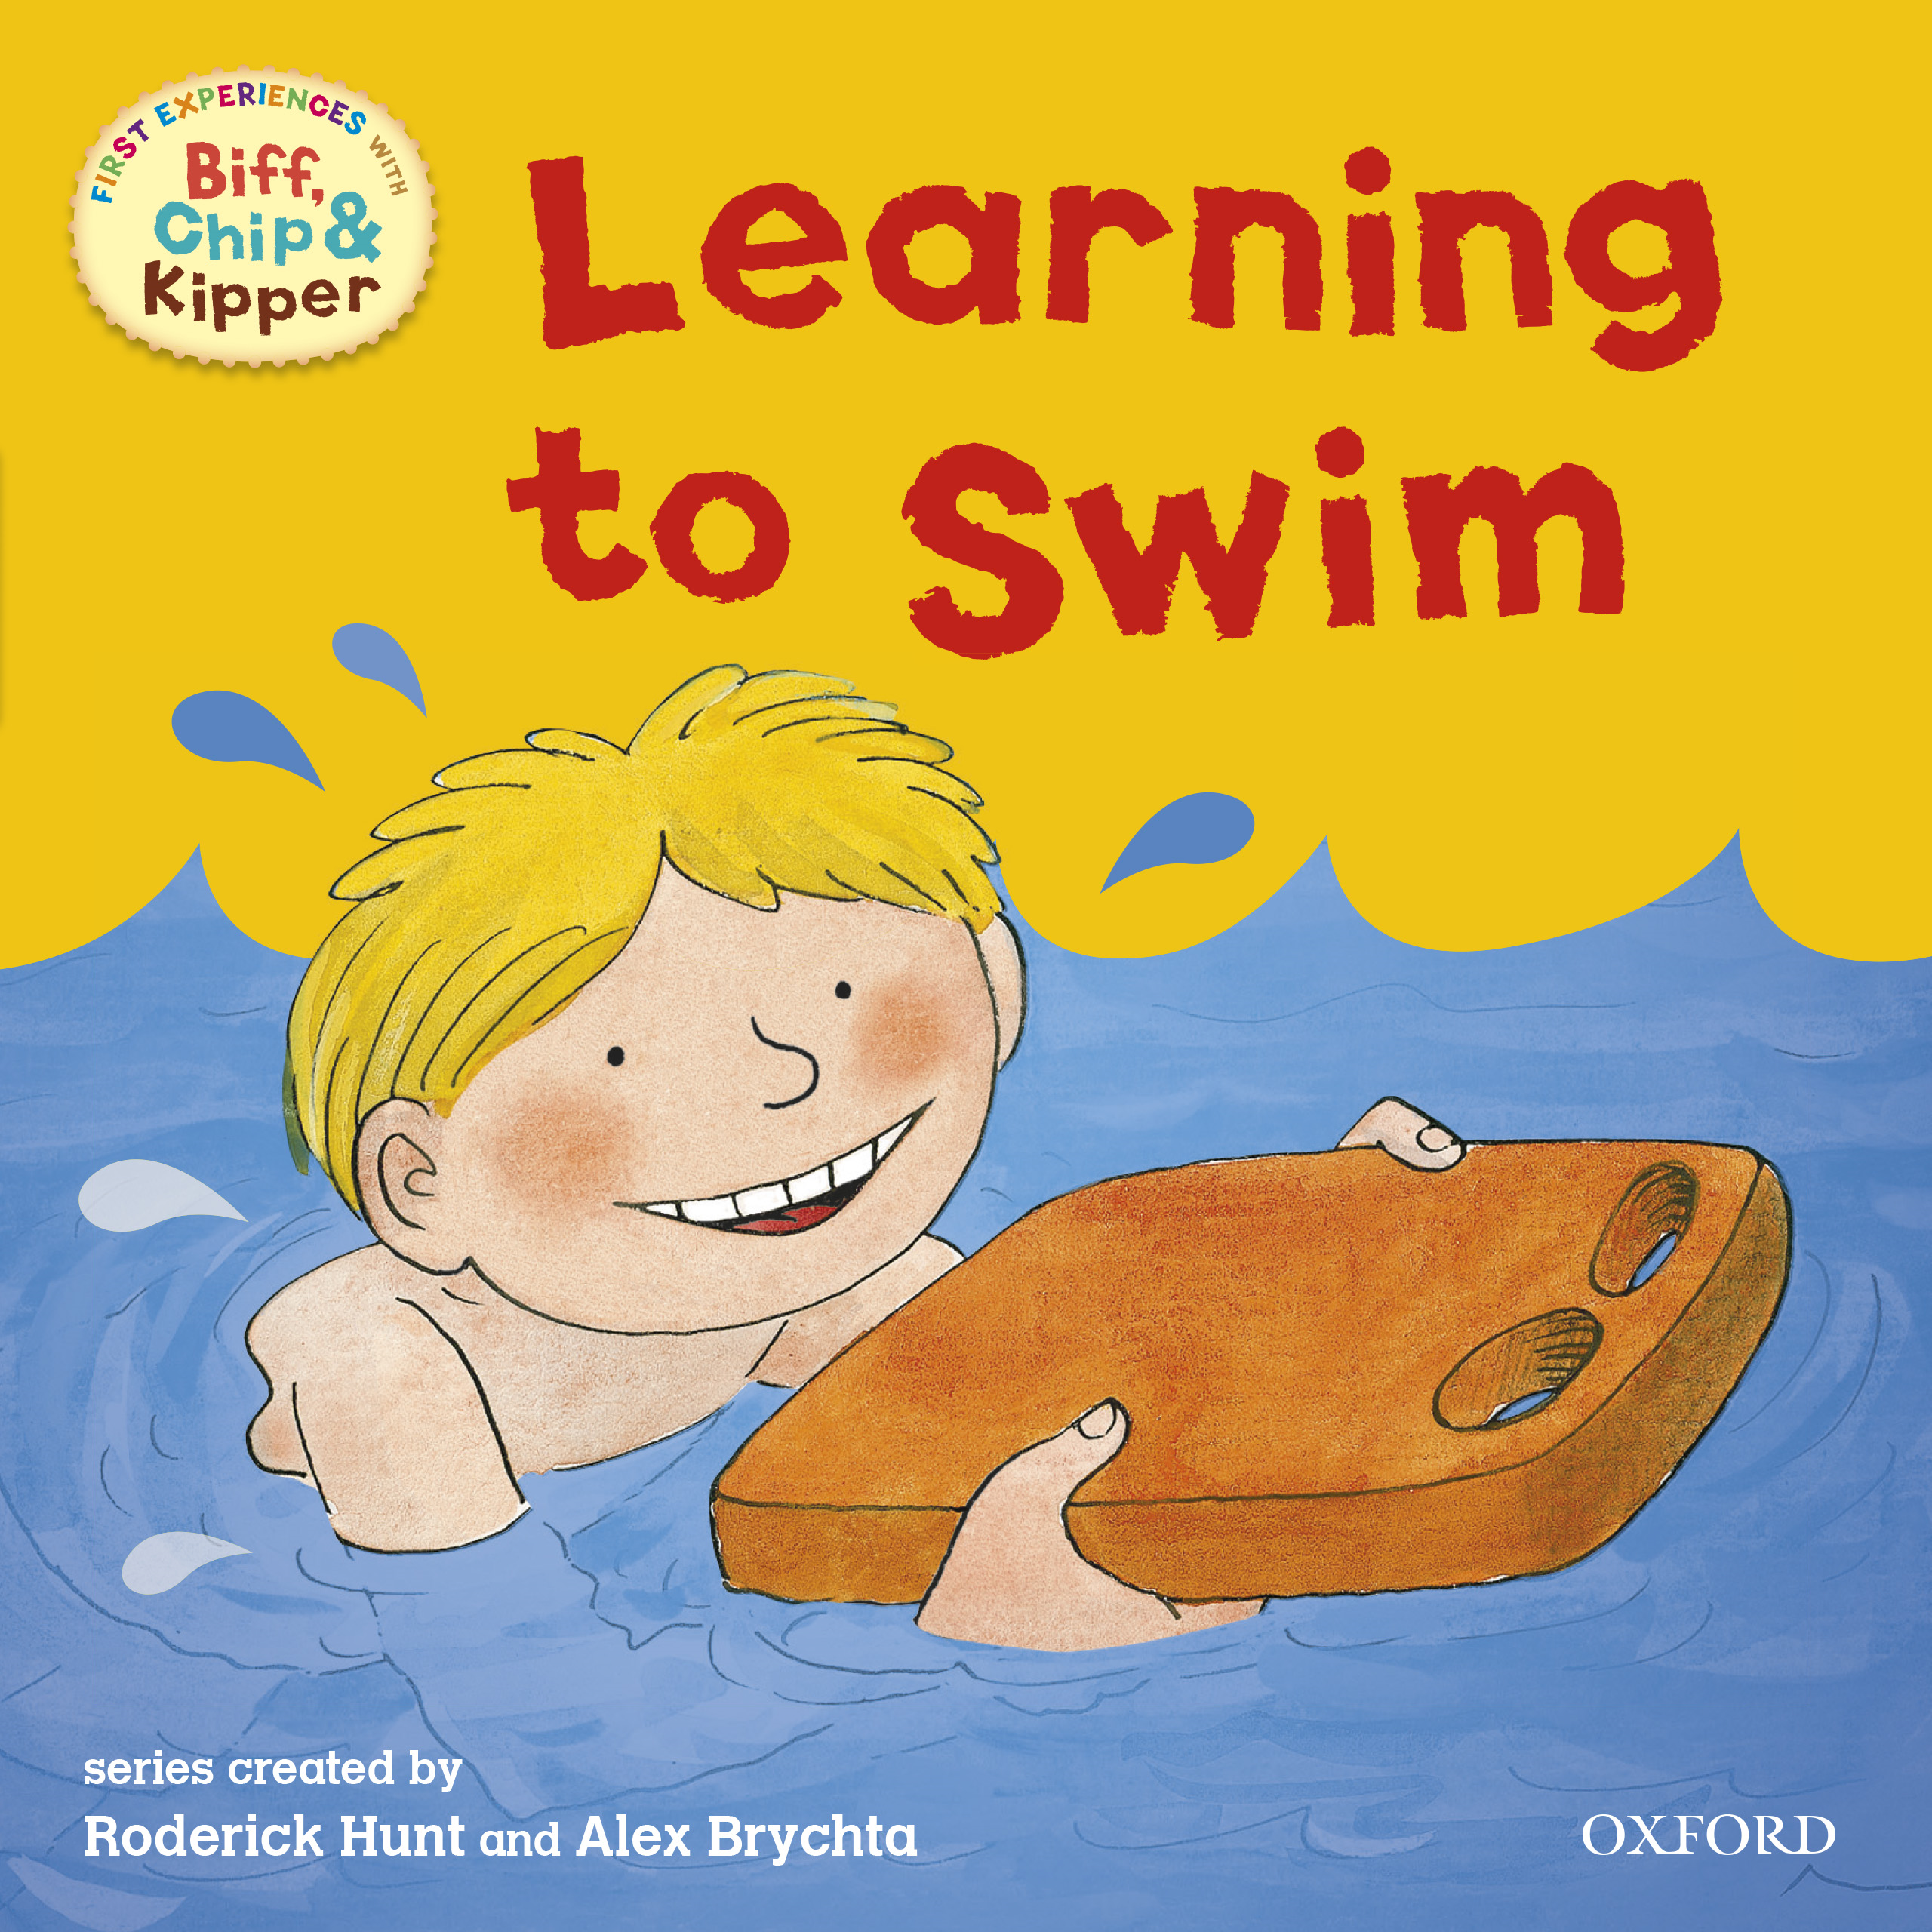 Learning to Swim (First Experiences with Biff,  Chip and Kipper)